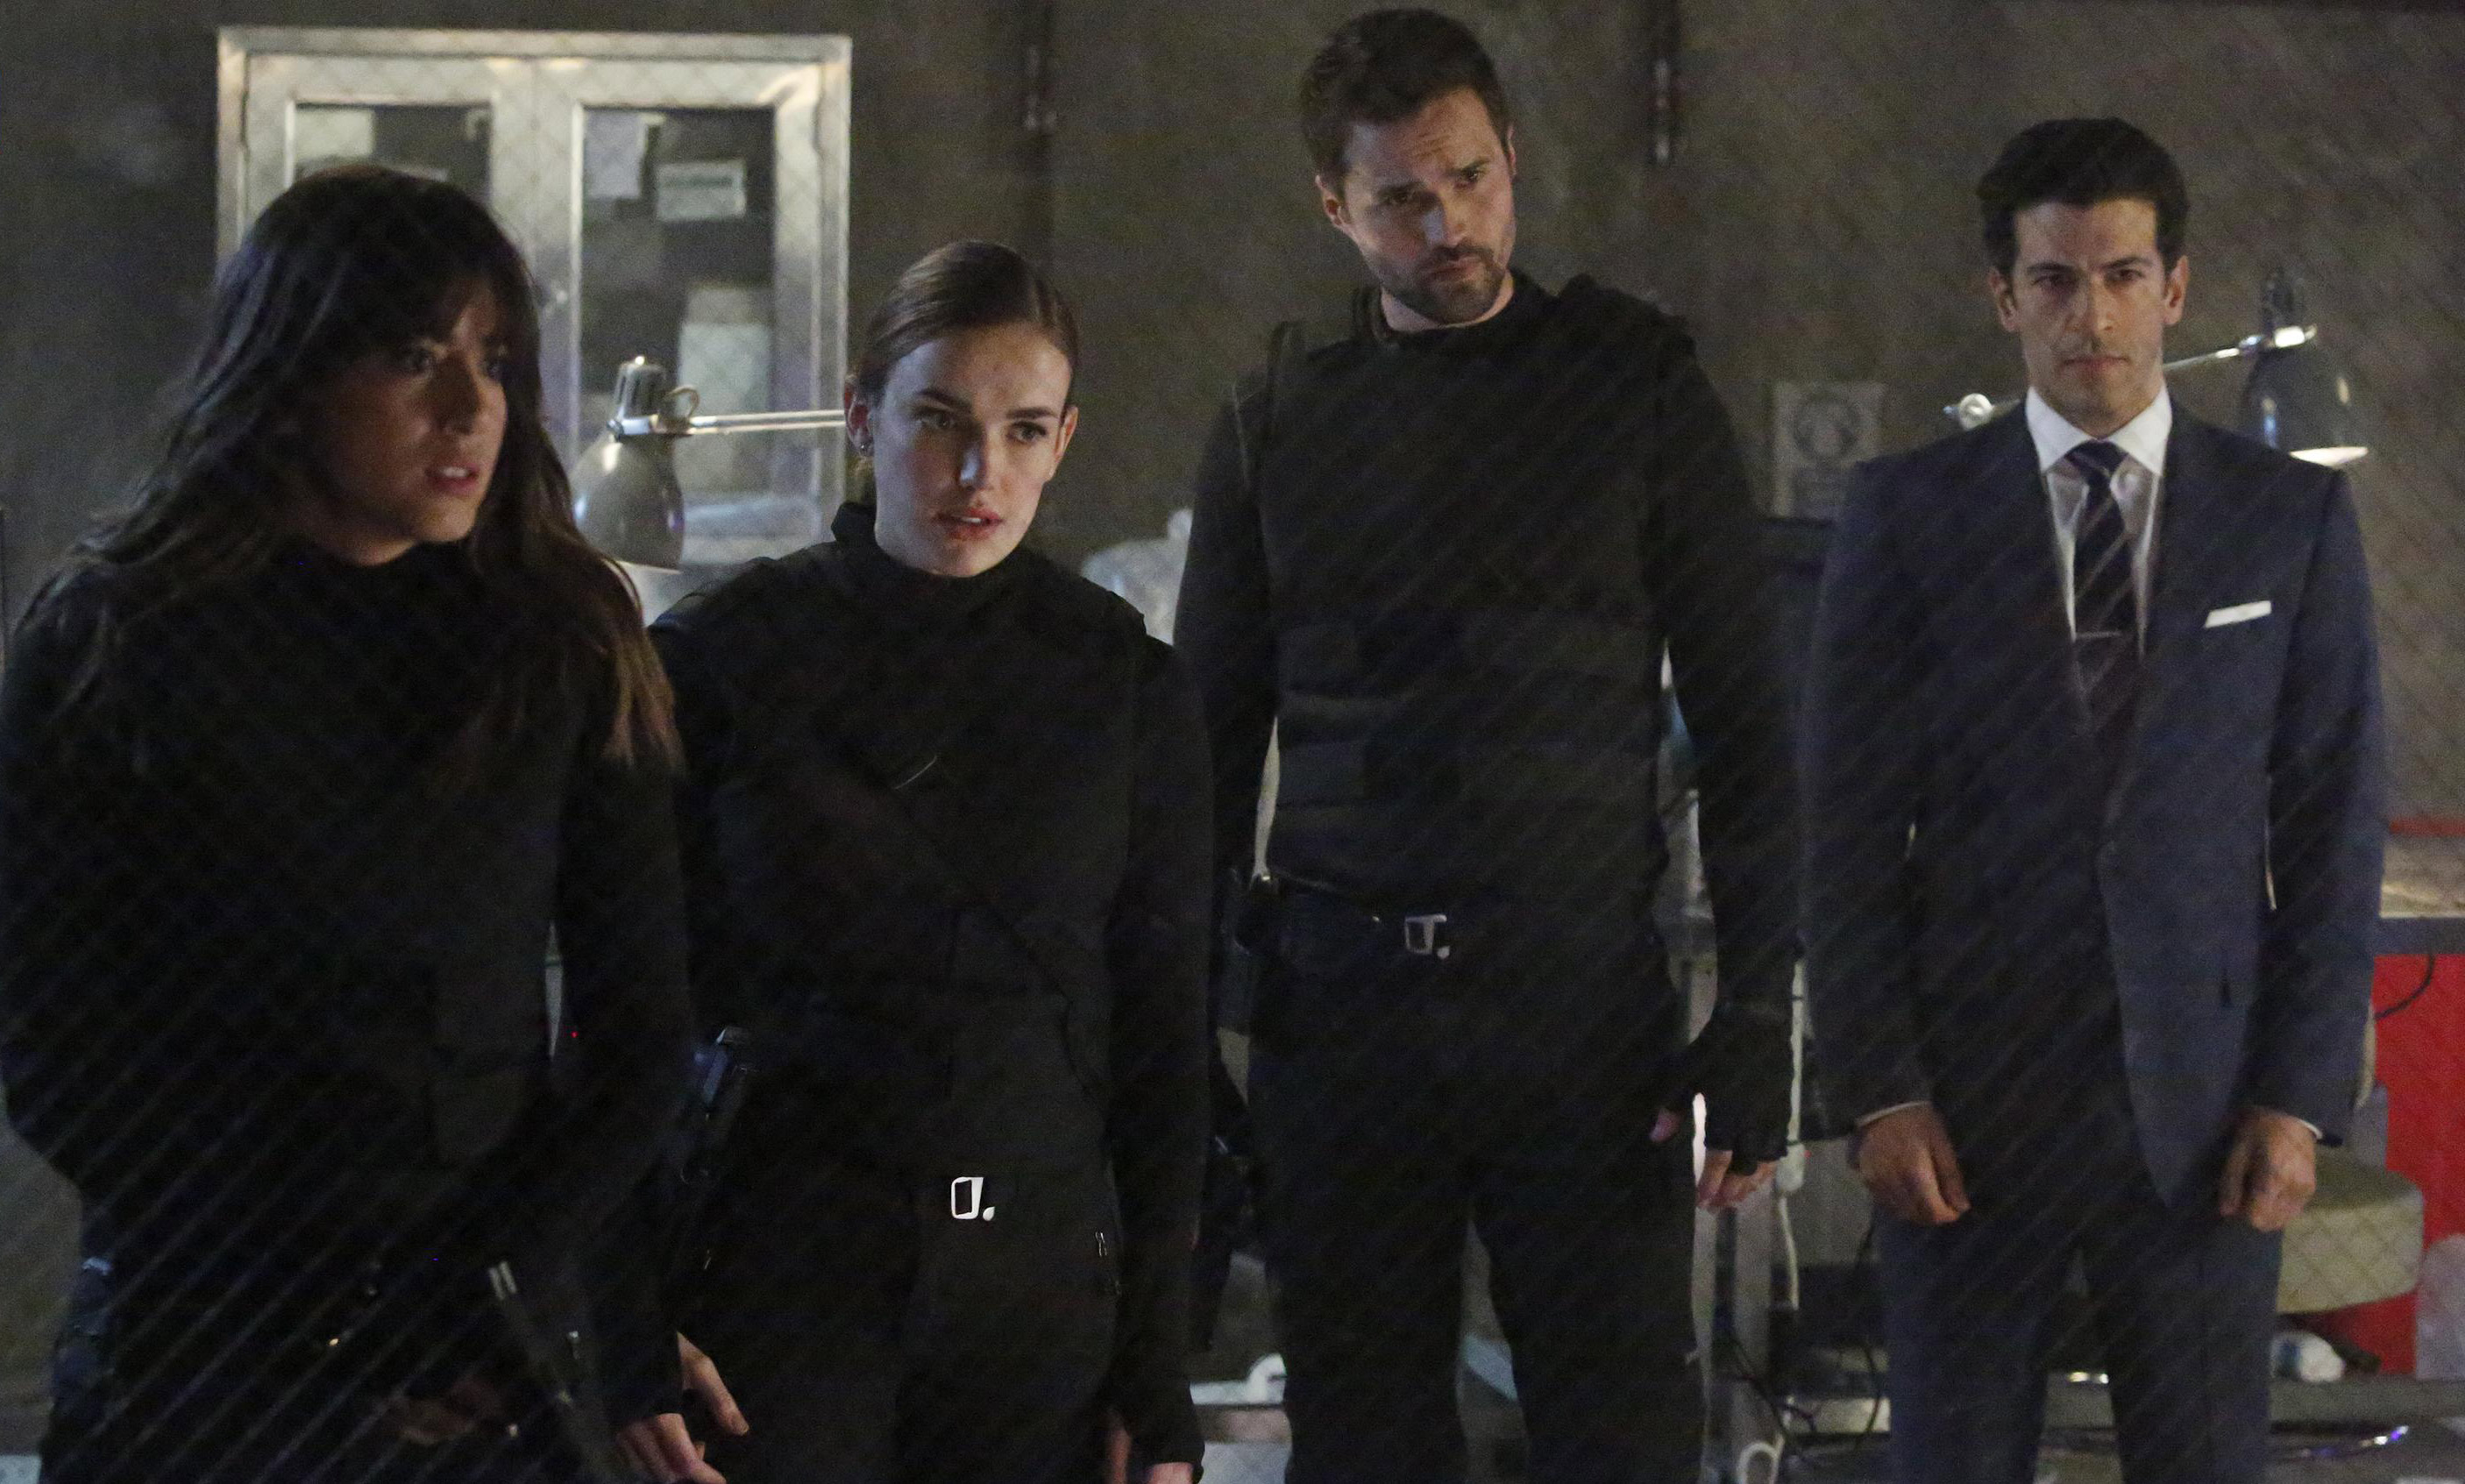 agents-of-shield-season-2-episode-19-1